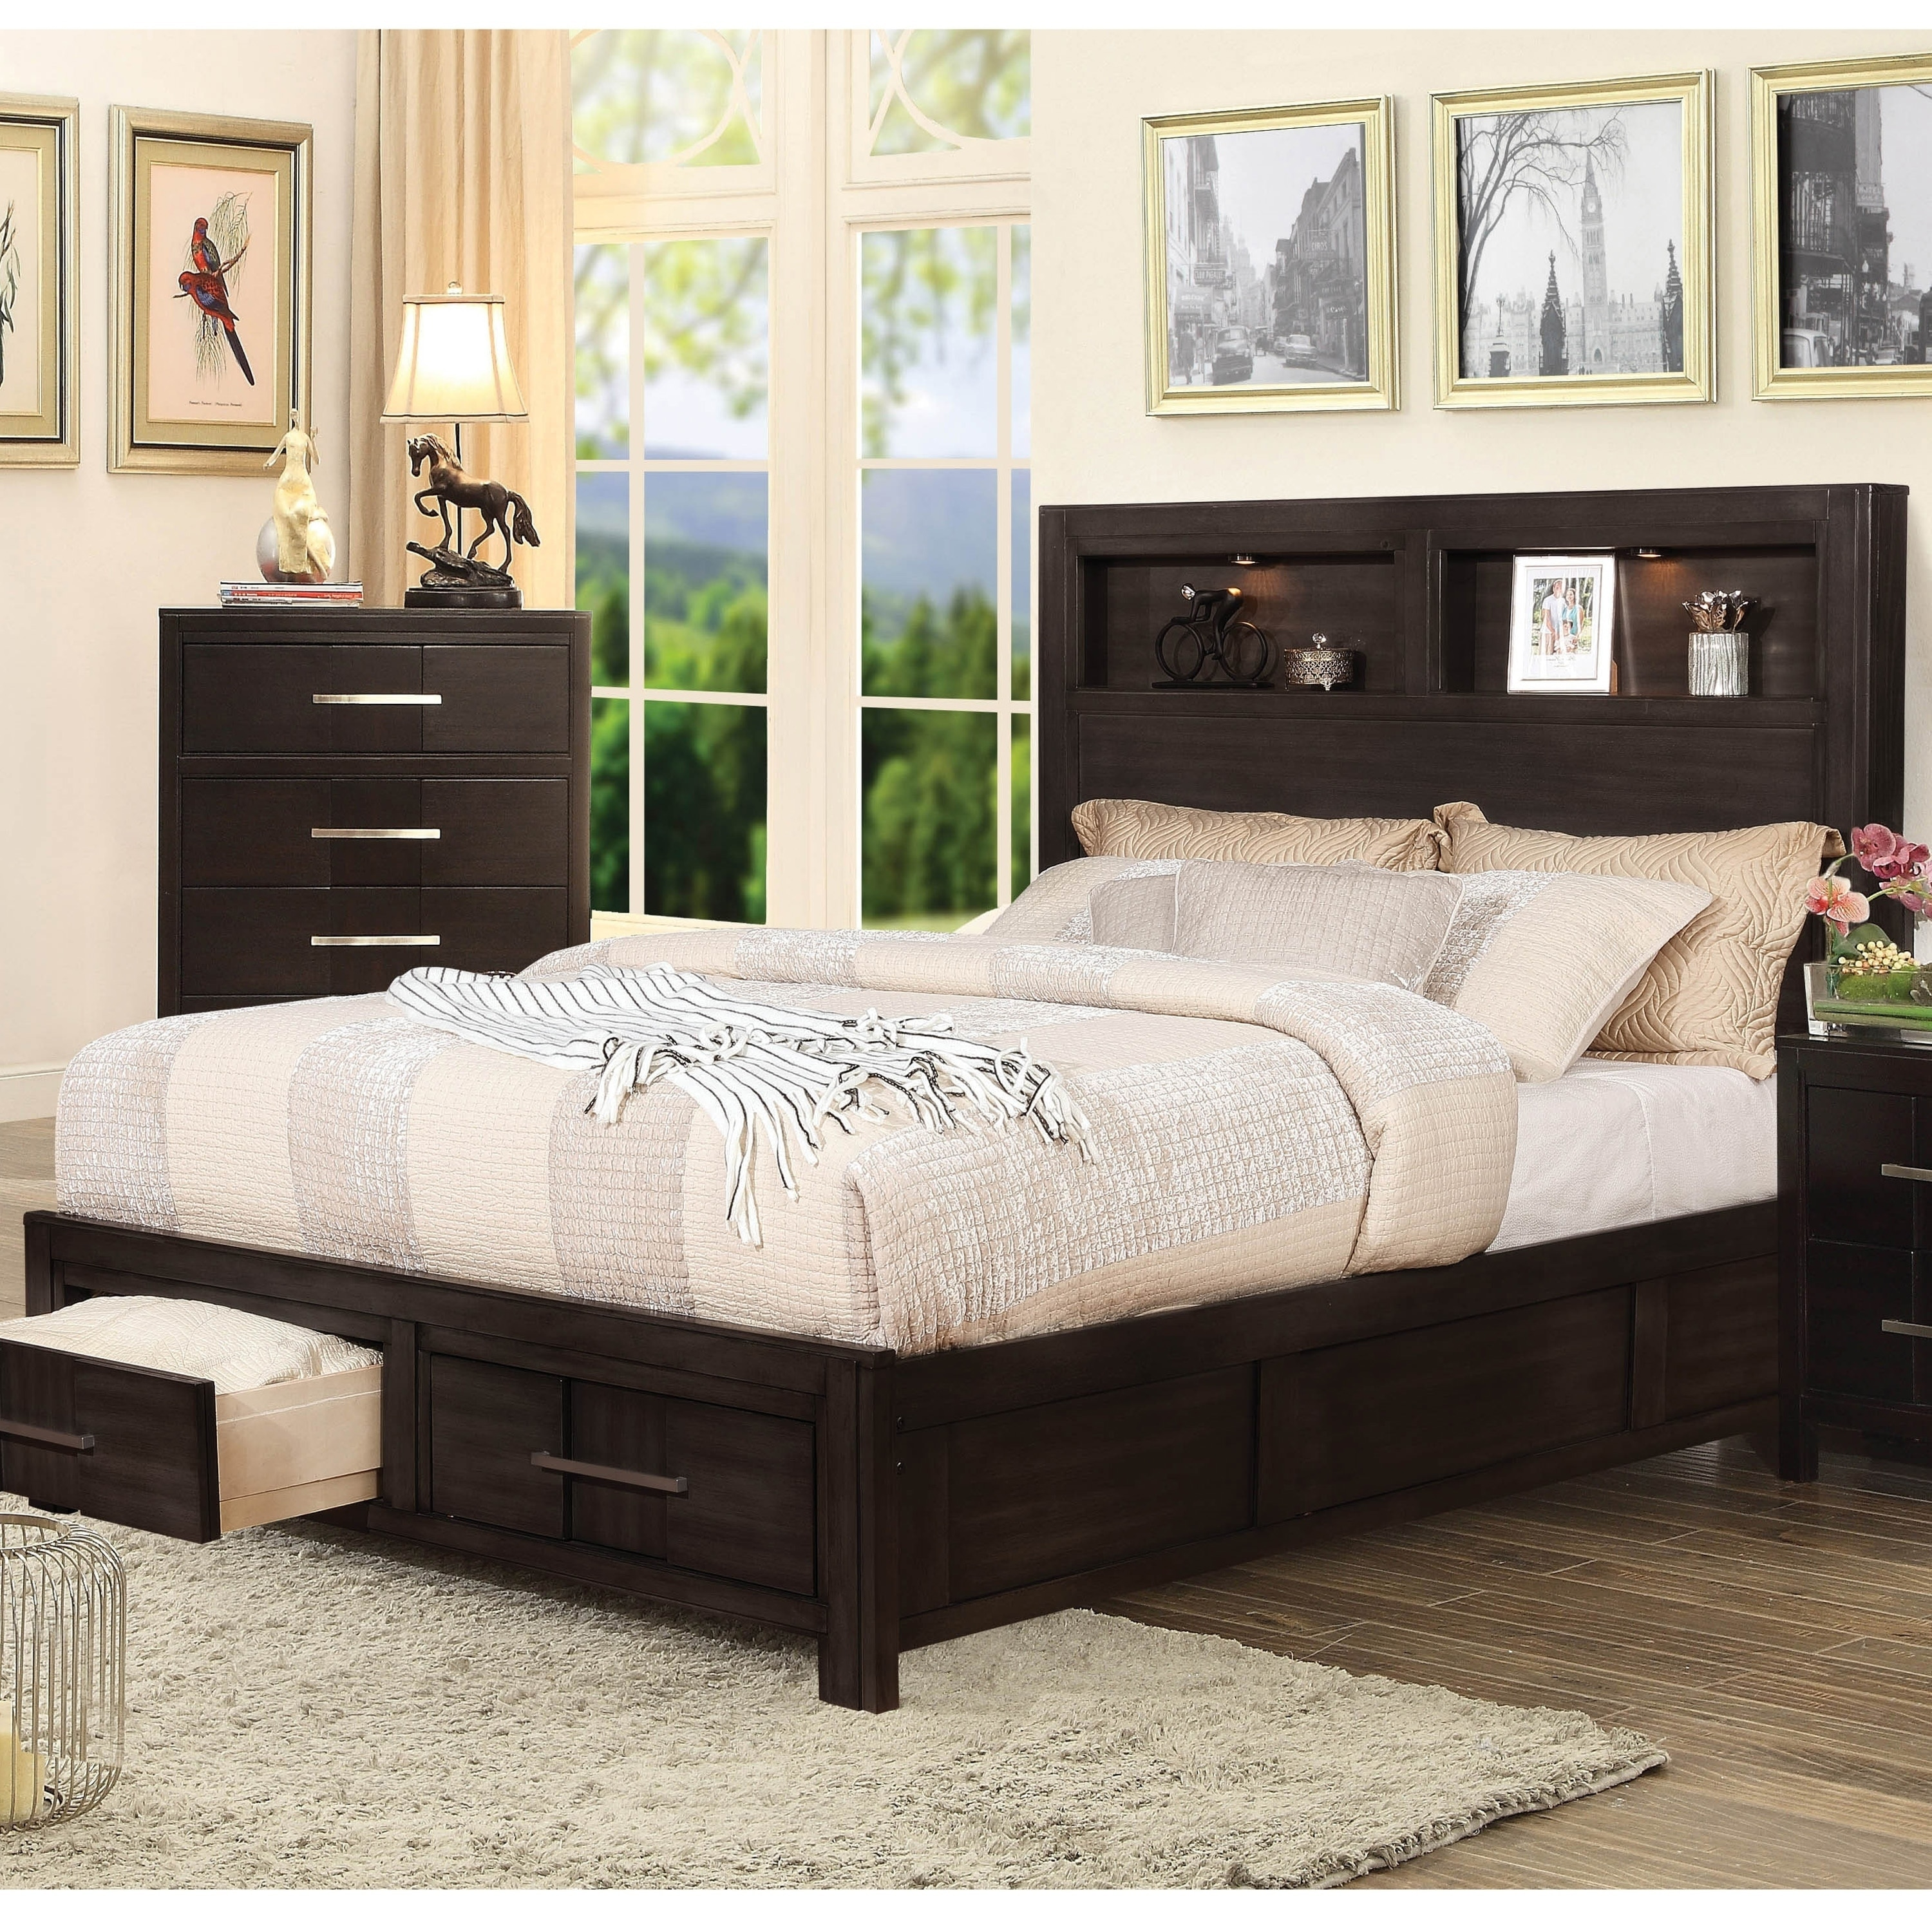 Furniture Of America Dito Transitional Solid Wood Storage Bed